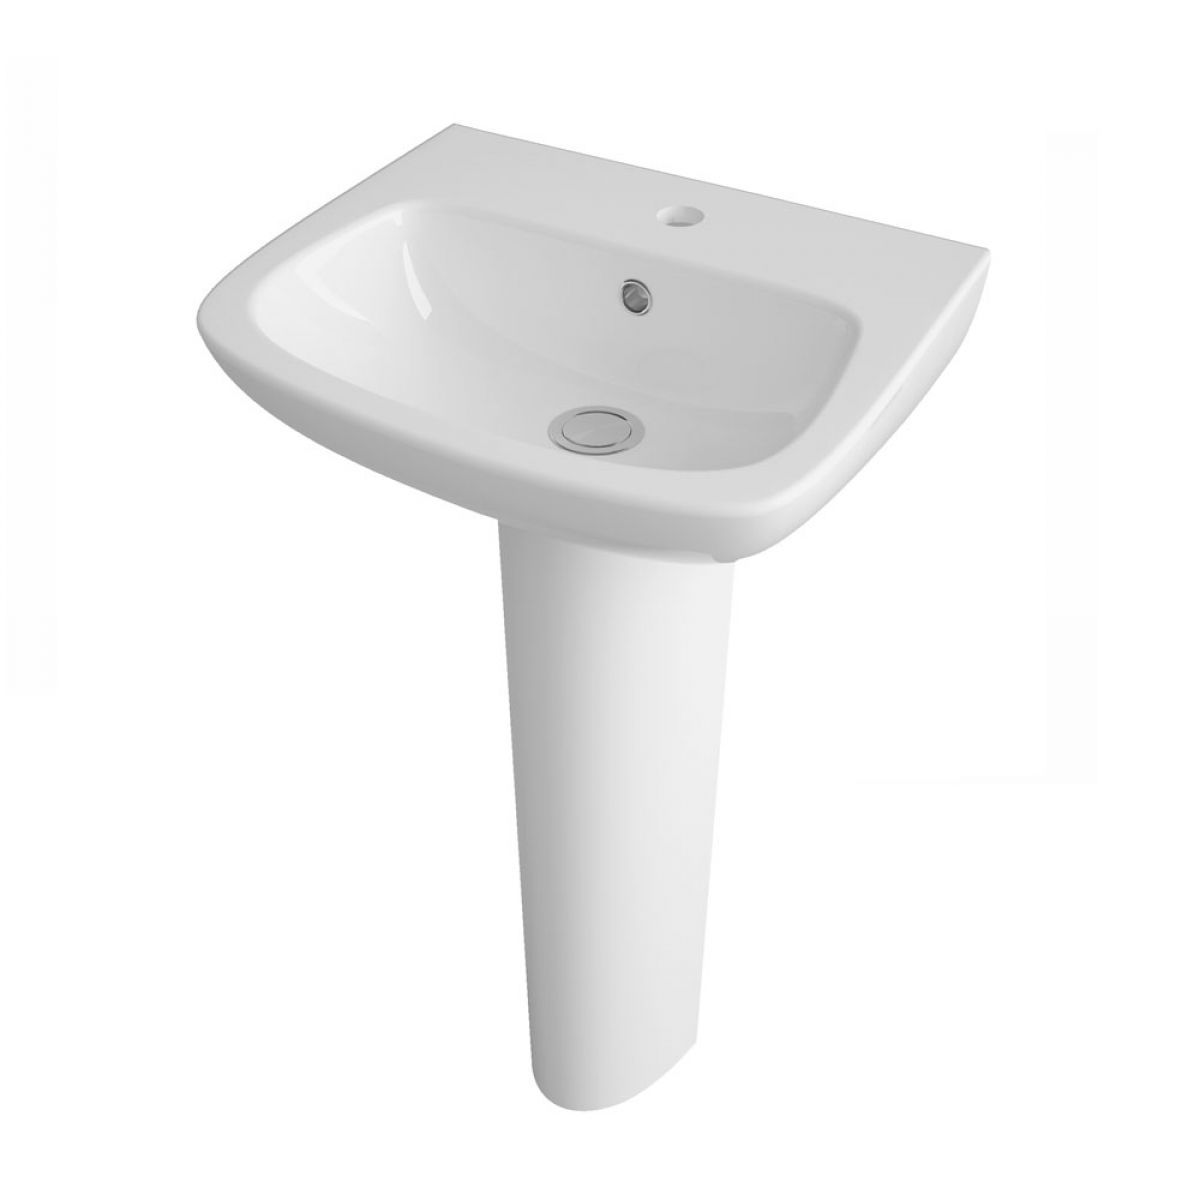 Nuie Ambrose 1 Tap Hole Basin with Full Pedestal 450mm